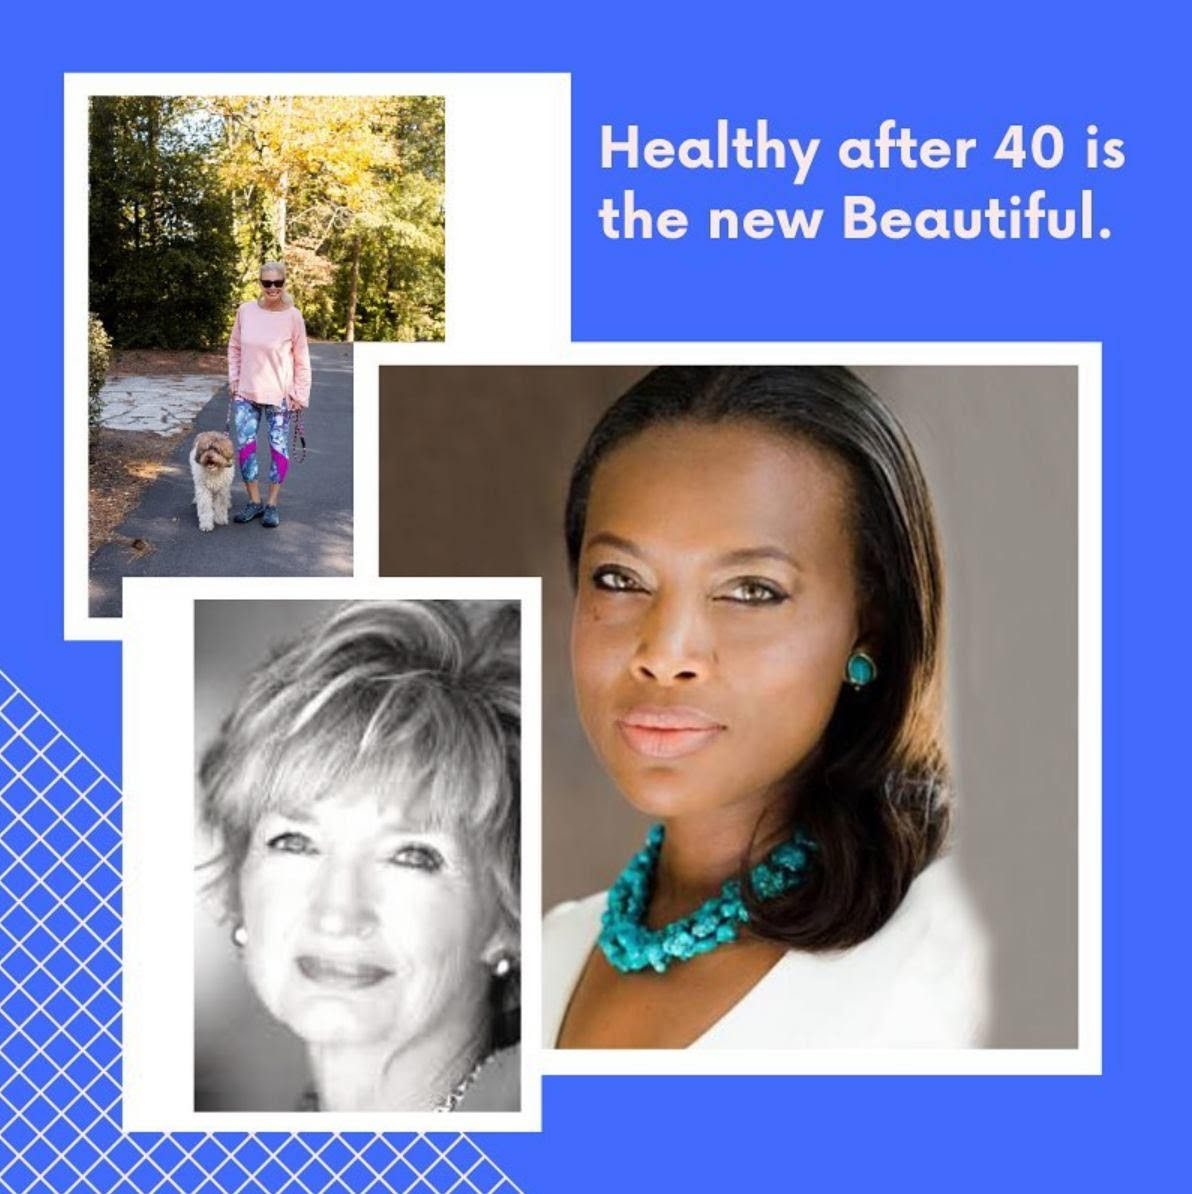 Healthy after 40